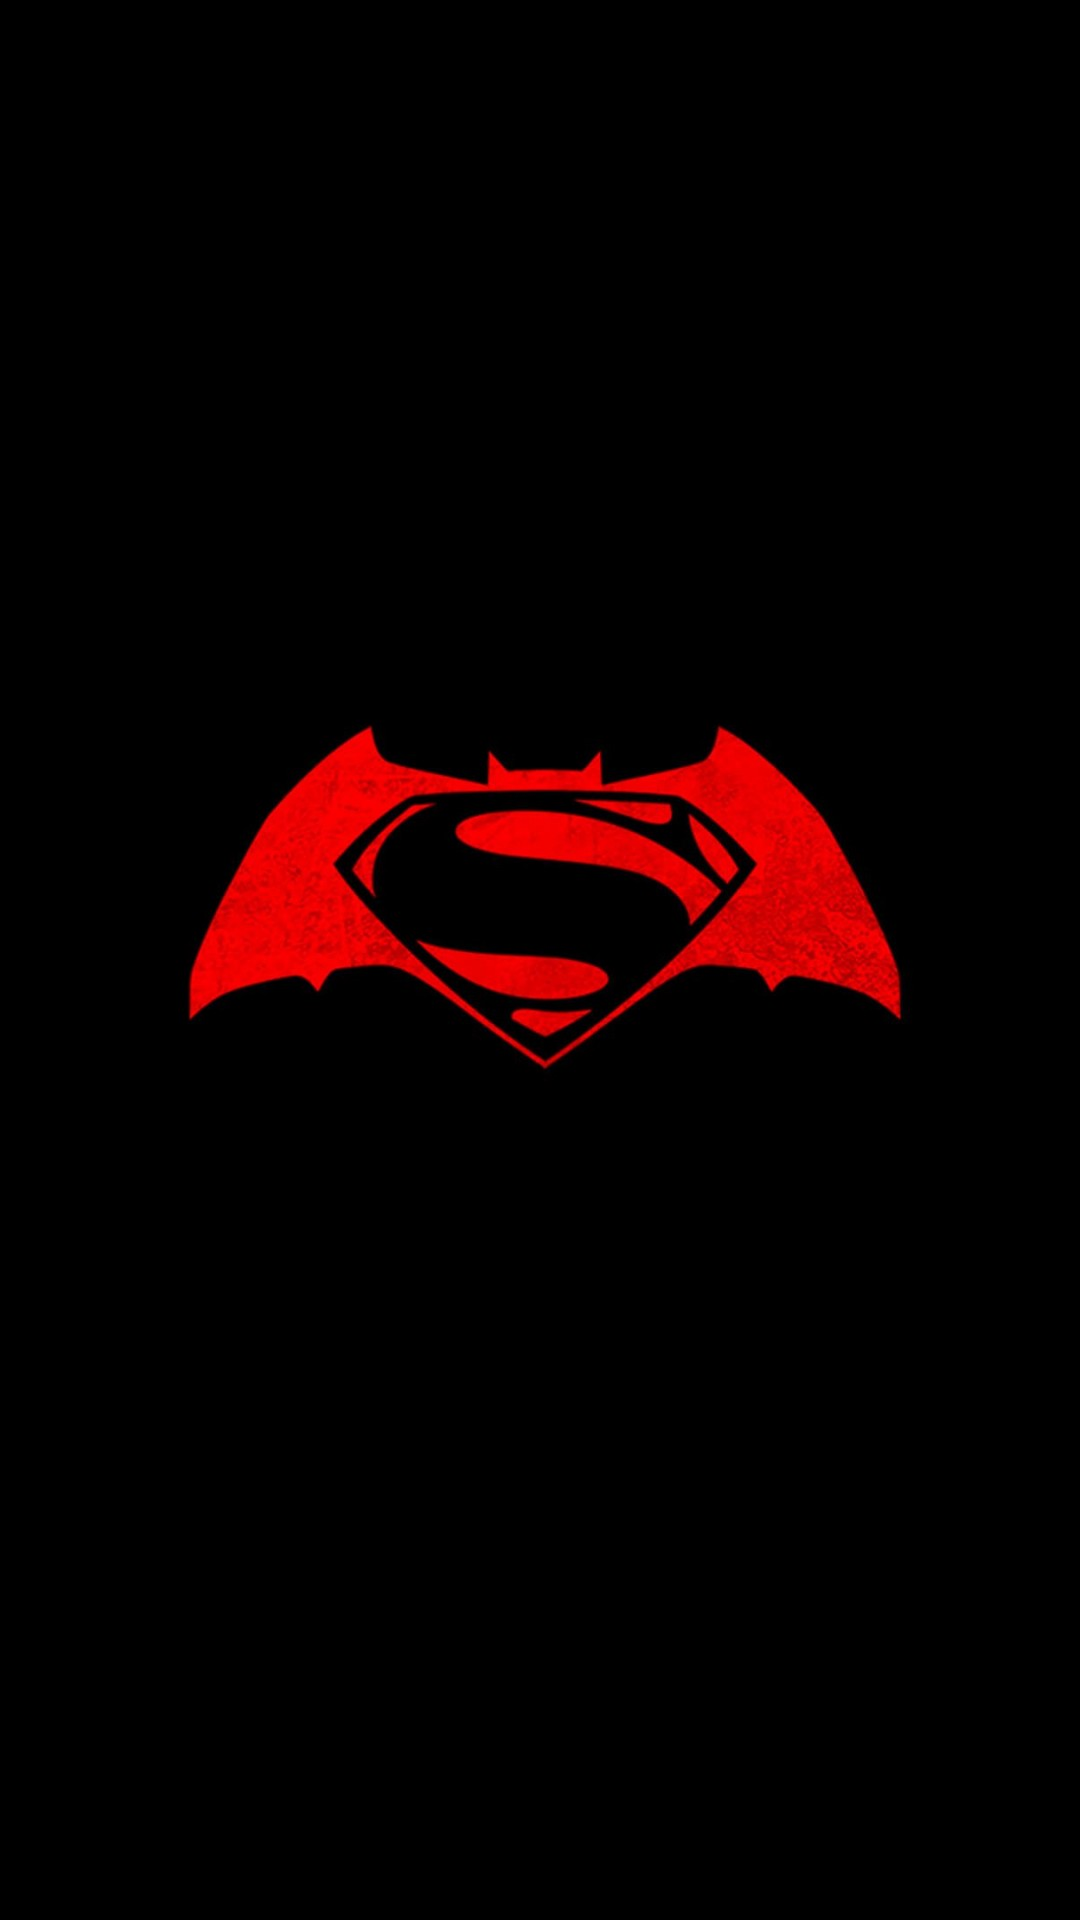 Batman v Superman logo Wallpaper for SAMSUNG Galaxy S4